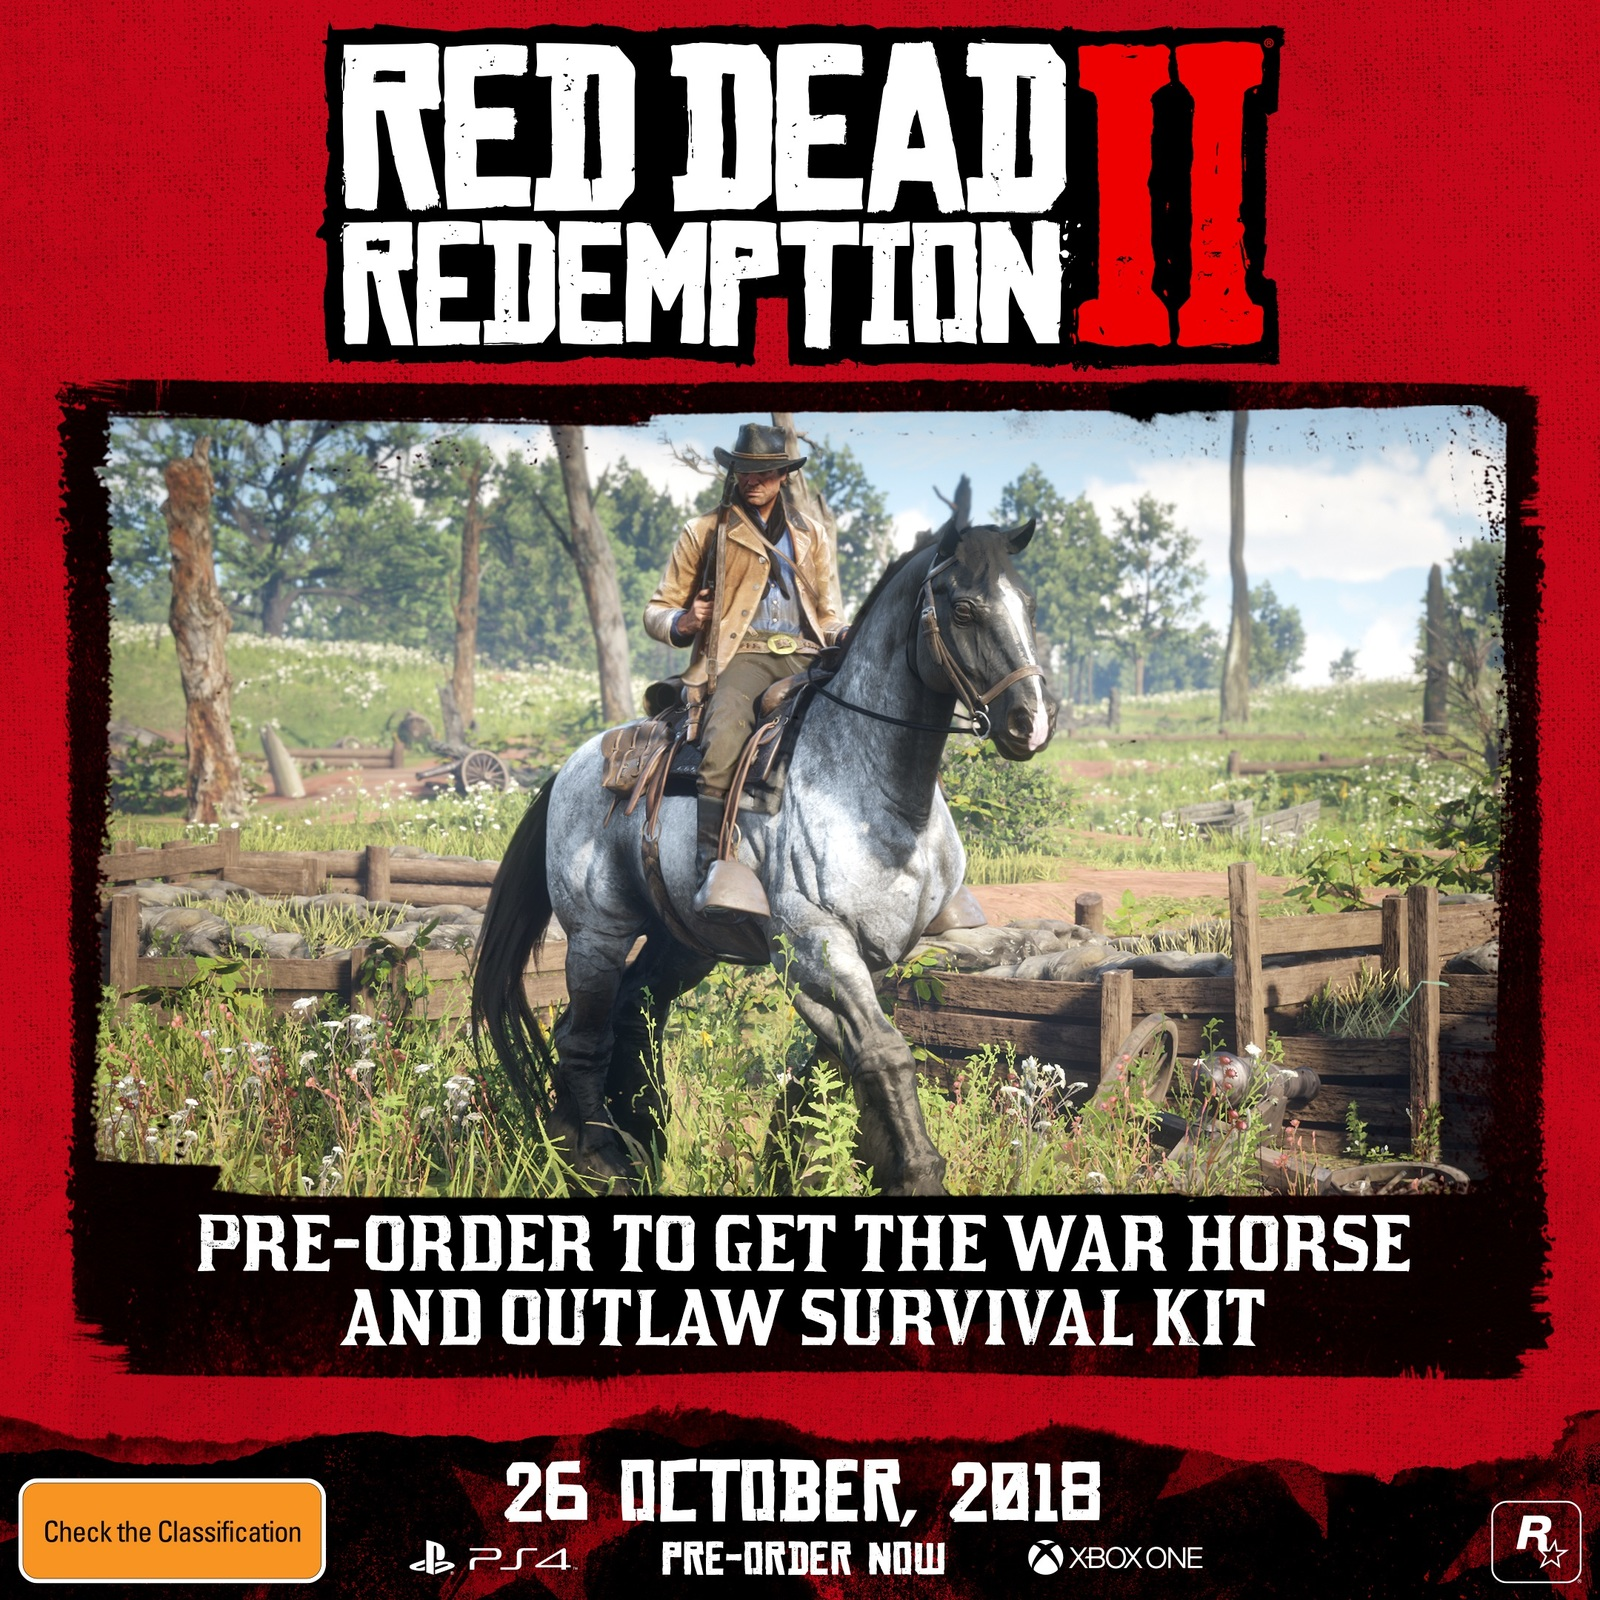 Red Dead Redemption 2 for Xbox One image